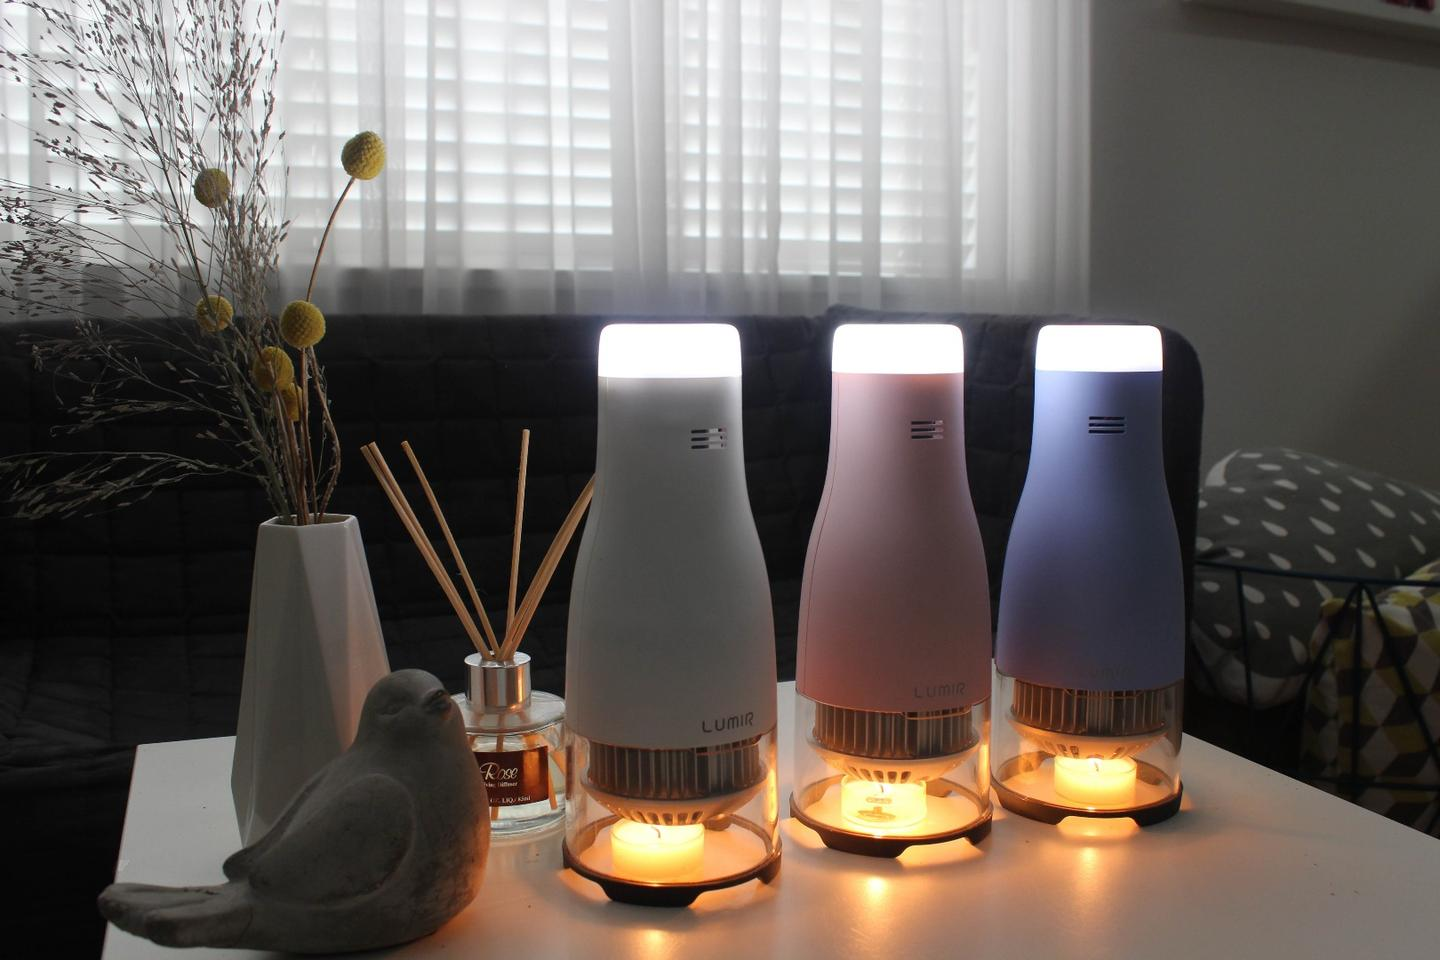 The Lumir C lamp uses heat generated by small candles to power LED lights